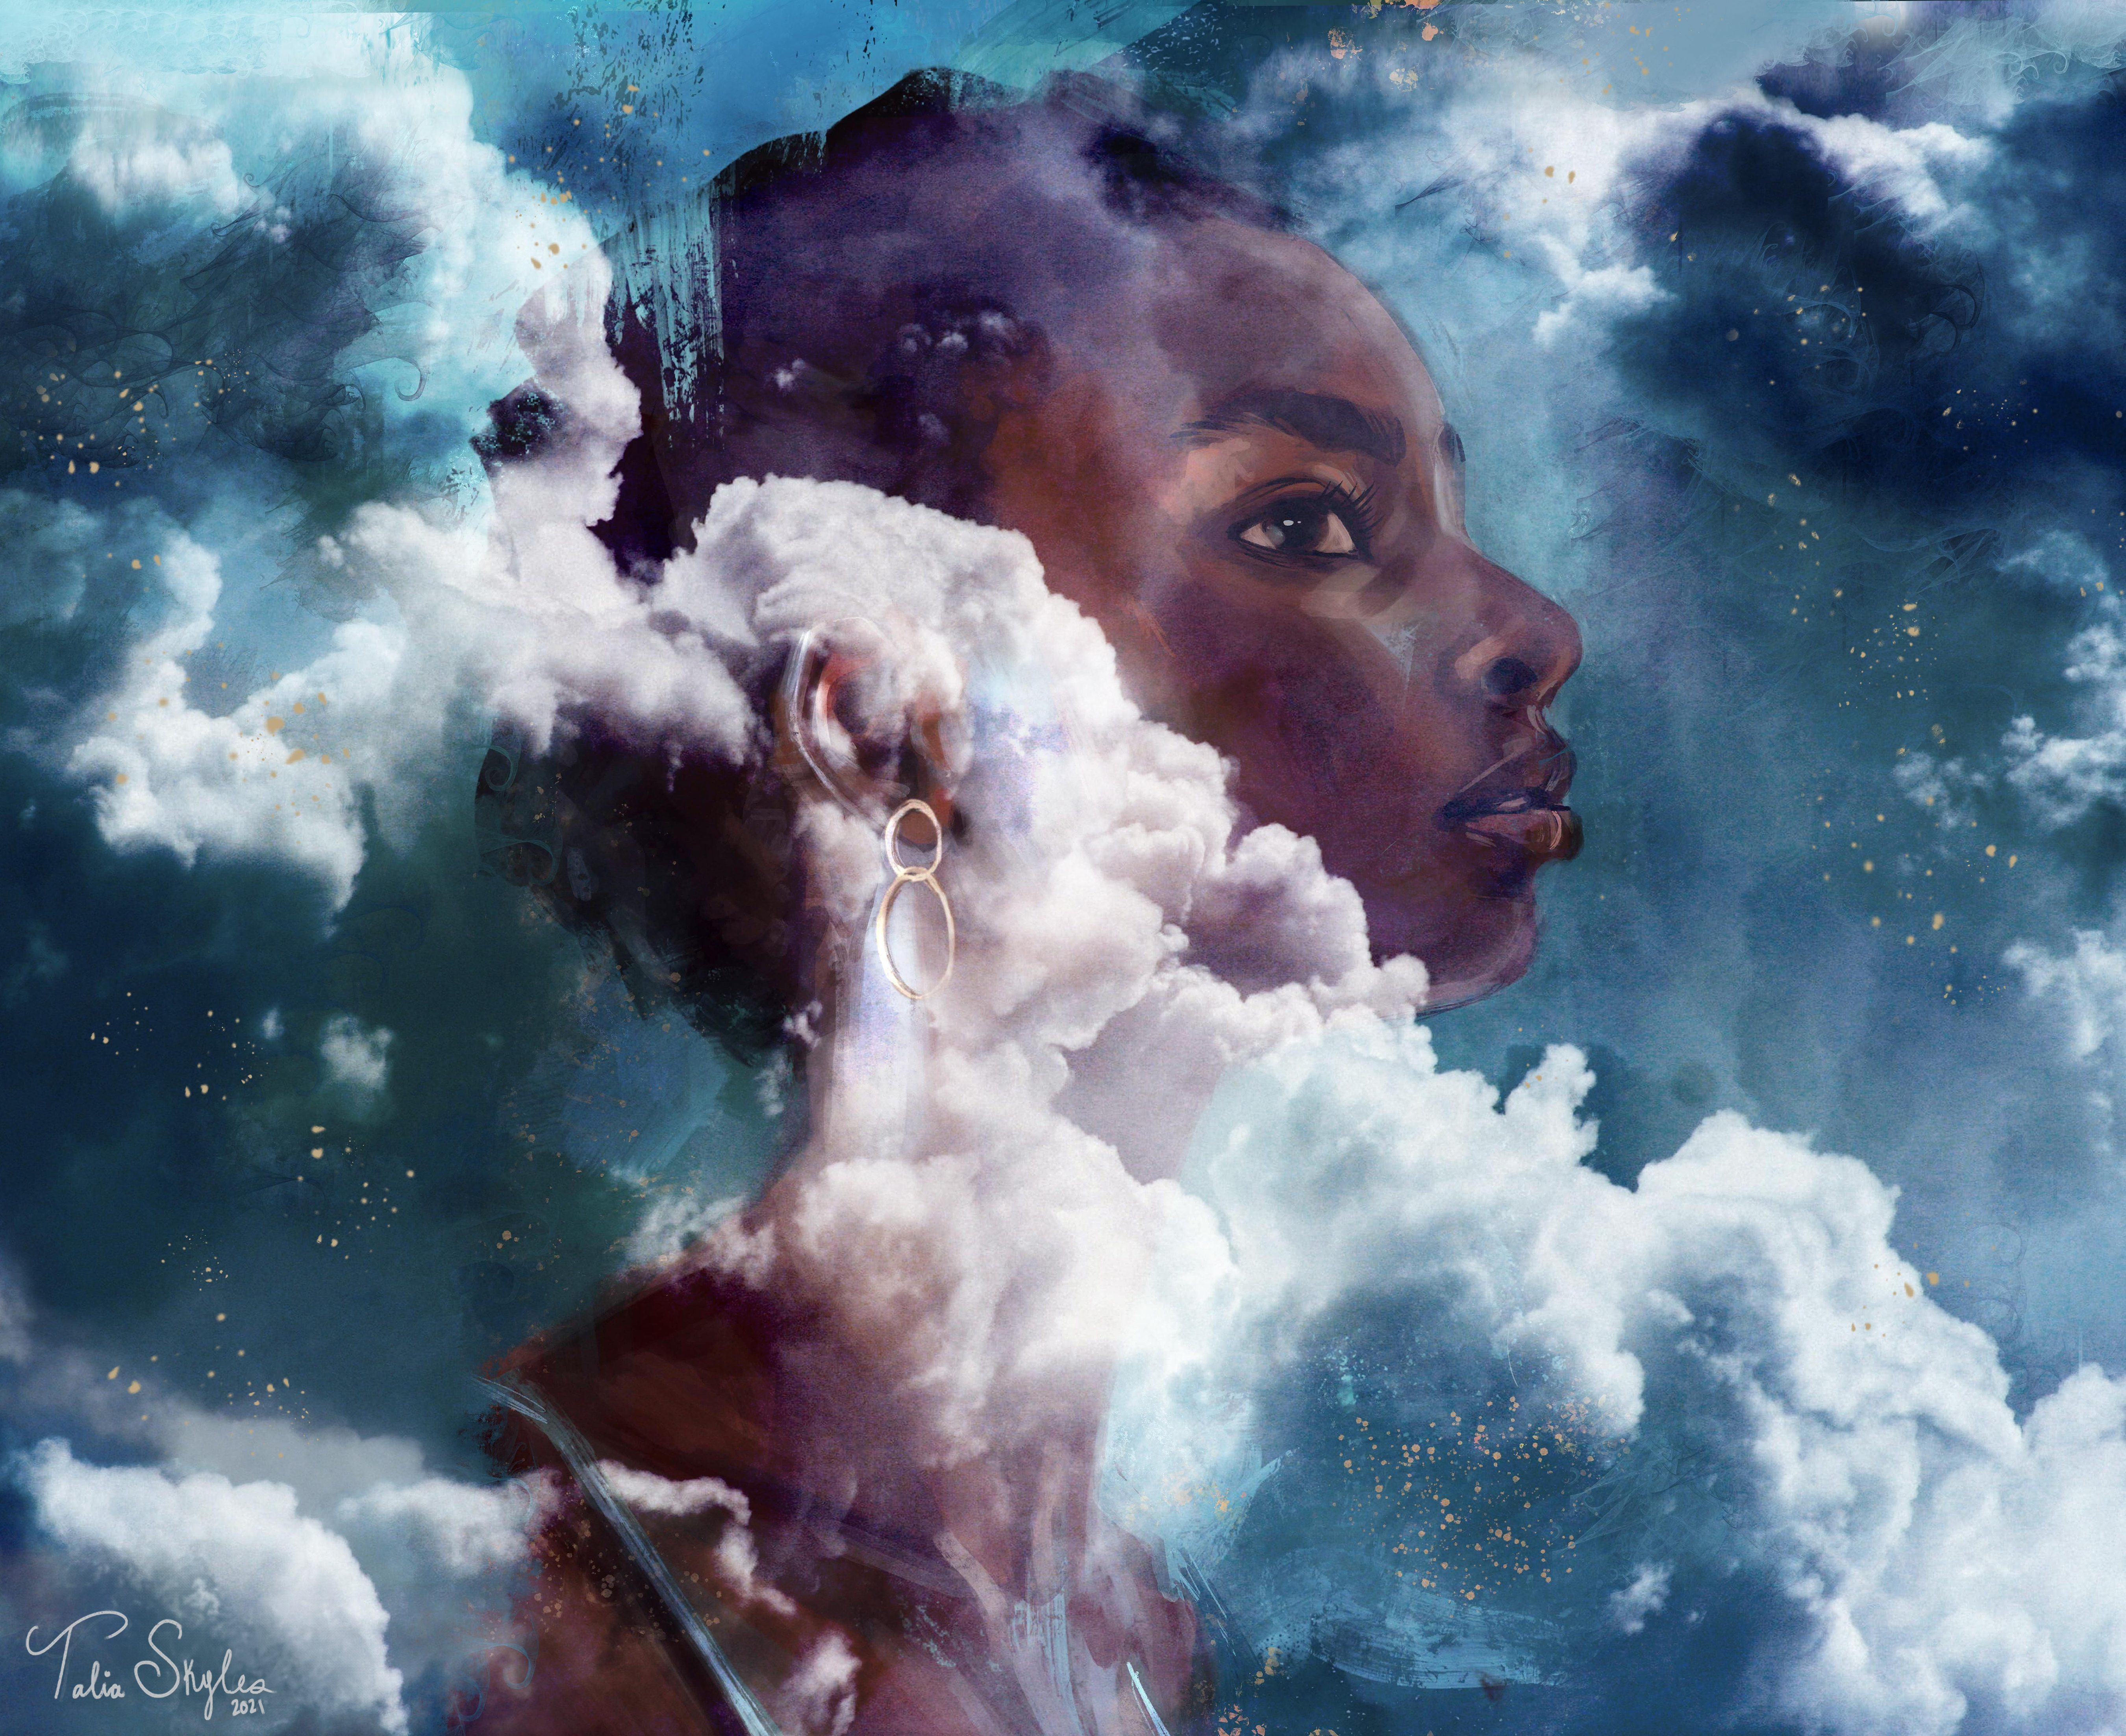 A blue painting / photo collage of a black woman with her head submerged and blending into the clouds